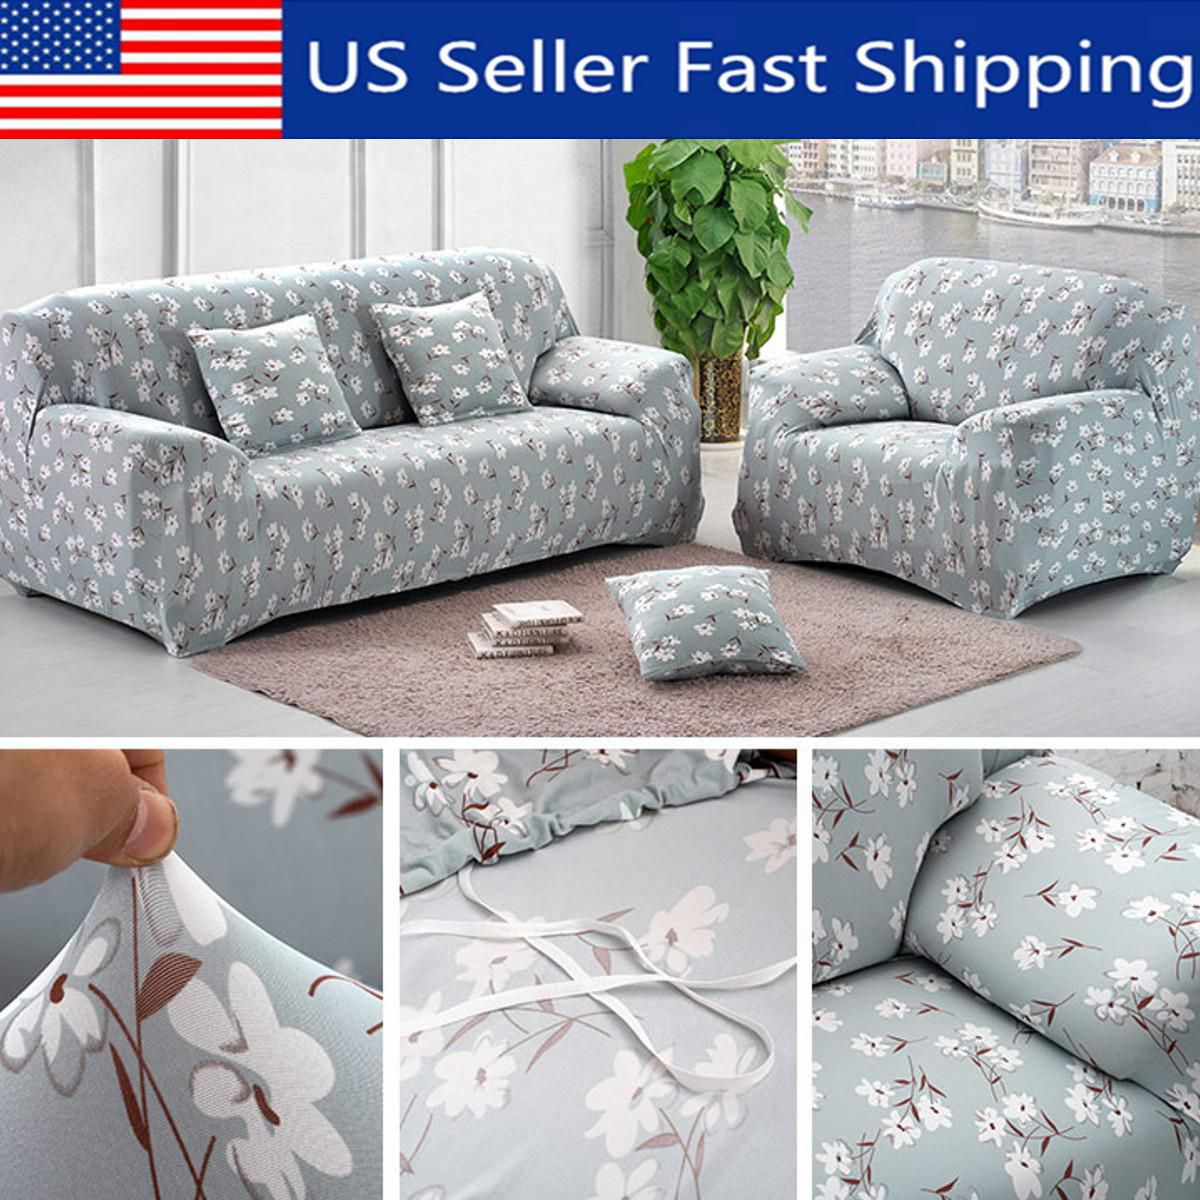 Marvelous 1 2 3 4 Seat Sofa Slipcover Soft Stretch Couch Cover Machost Co Dining Chair Design Ideas Machostcouk